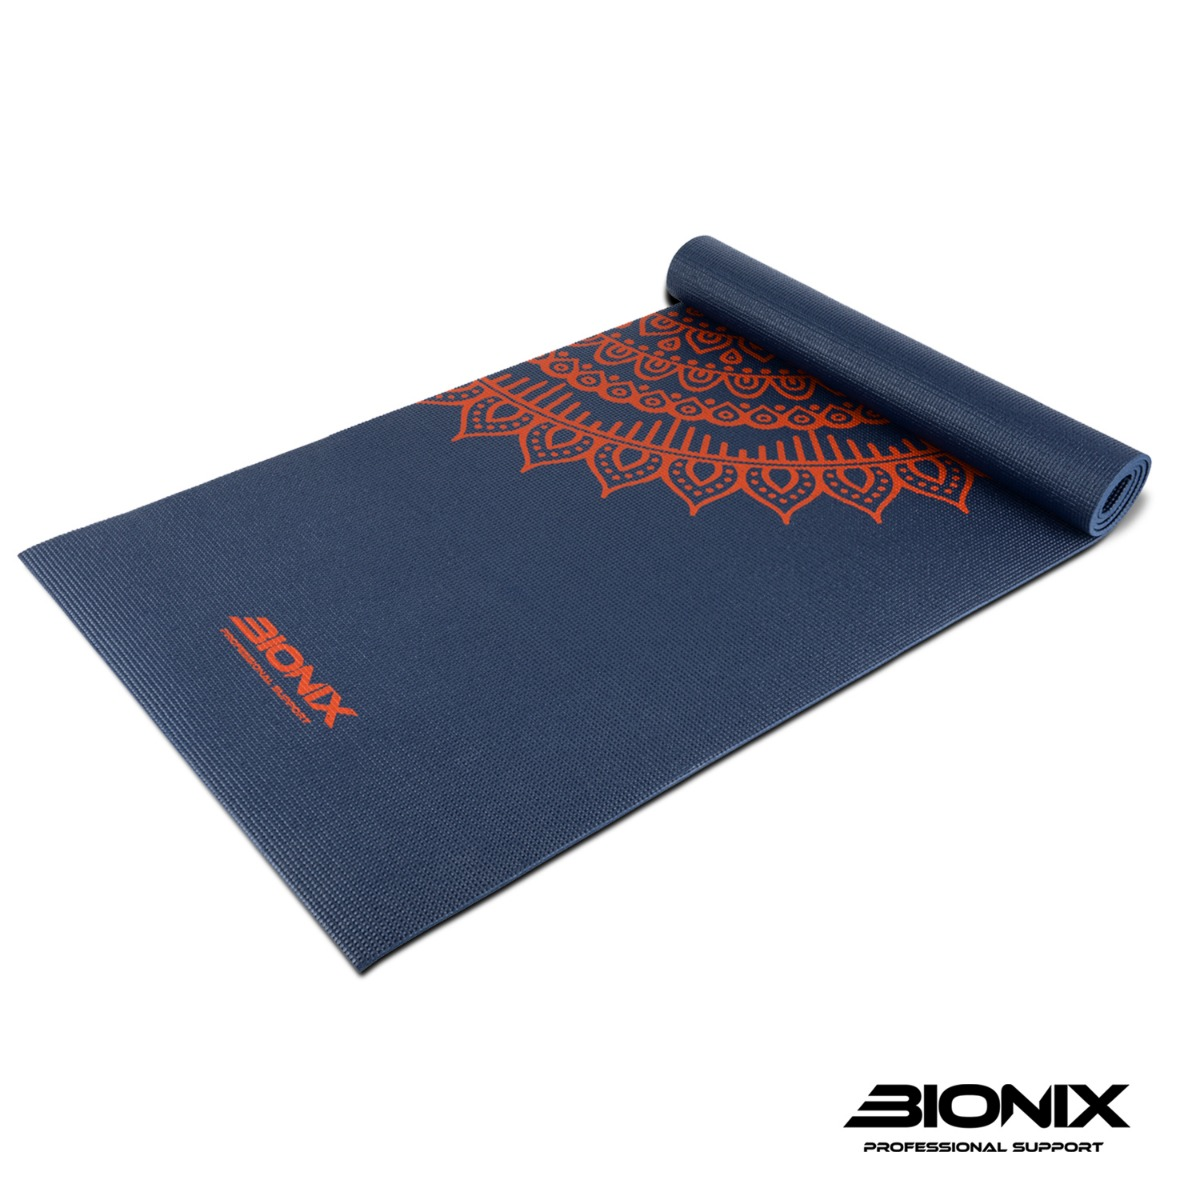 30f23d104158 Printed Yoga Mat and Carry Bag Extra Thick 6mm Large Non Slip Design  Pilates Gym